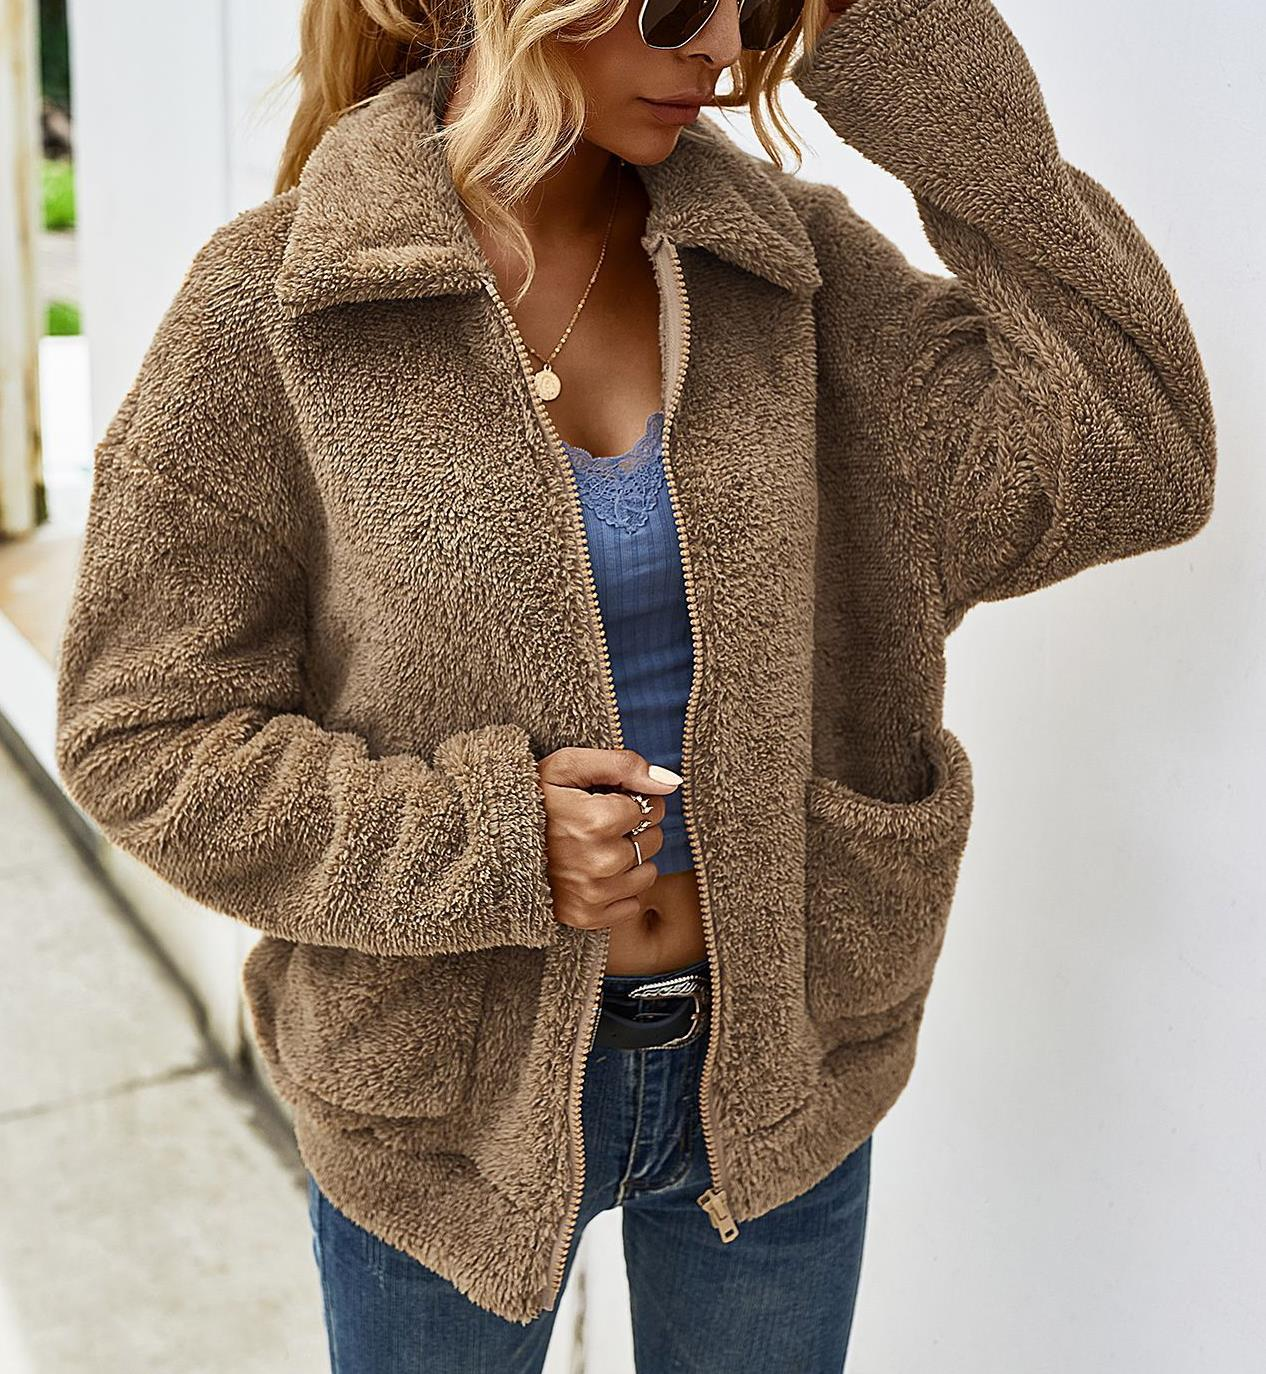 Zipper Shearling Long Sleeve with Jacket